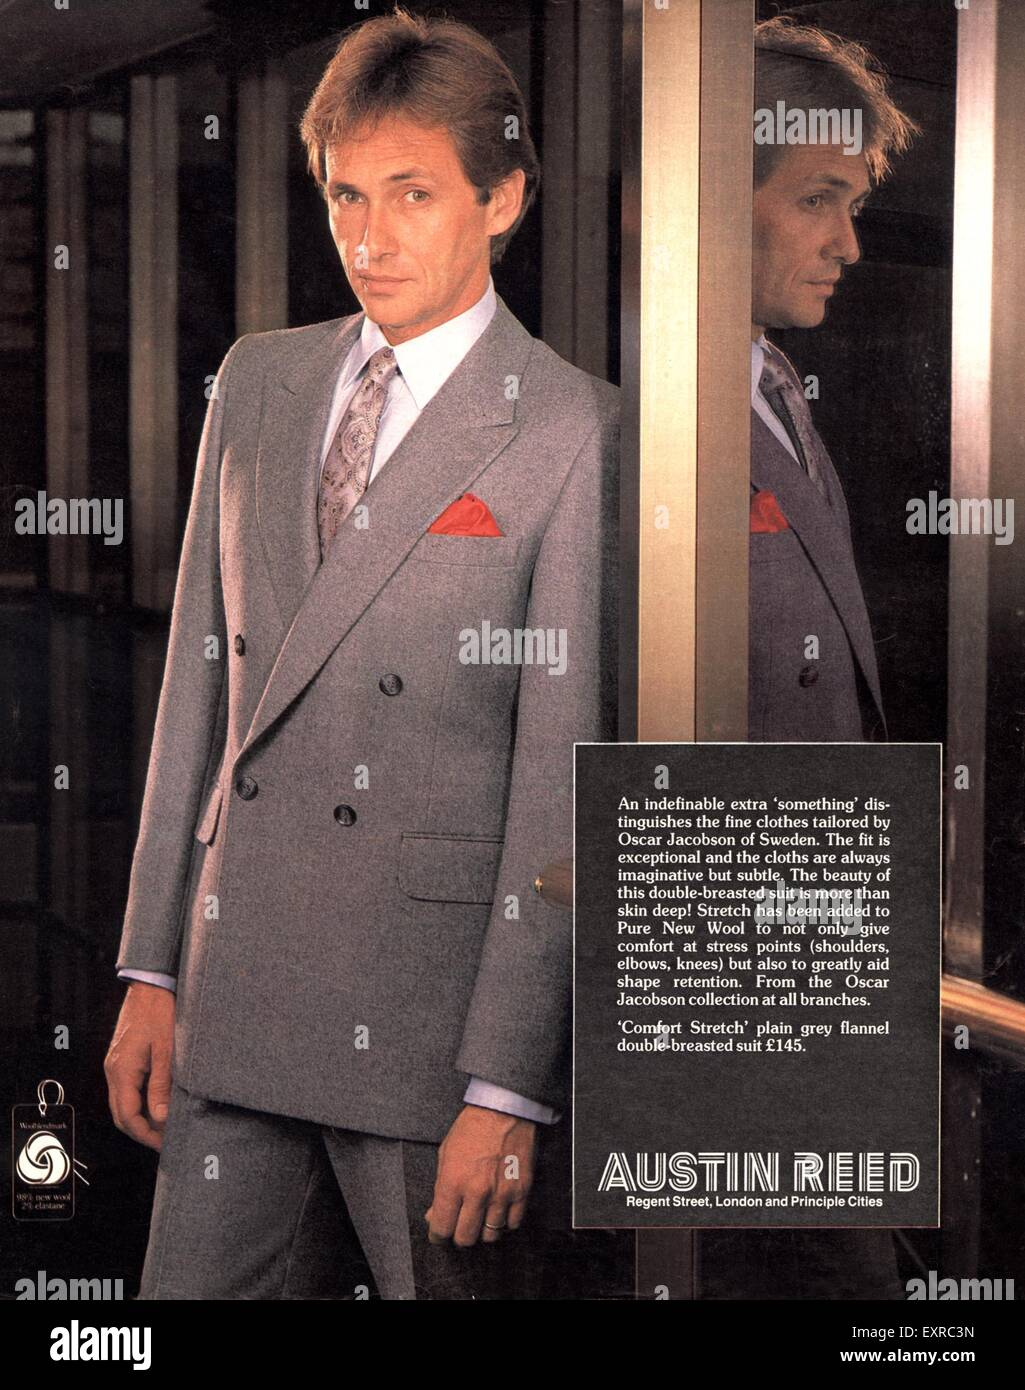 1980s Uk Austin Reed Magazine Advert Stock Photo Alamy